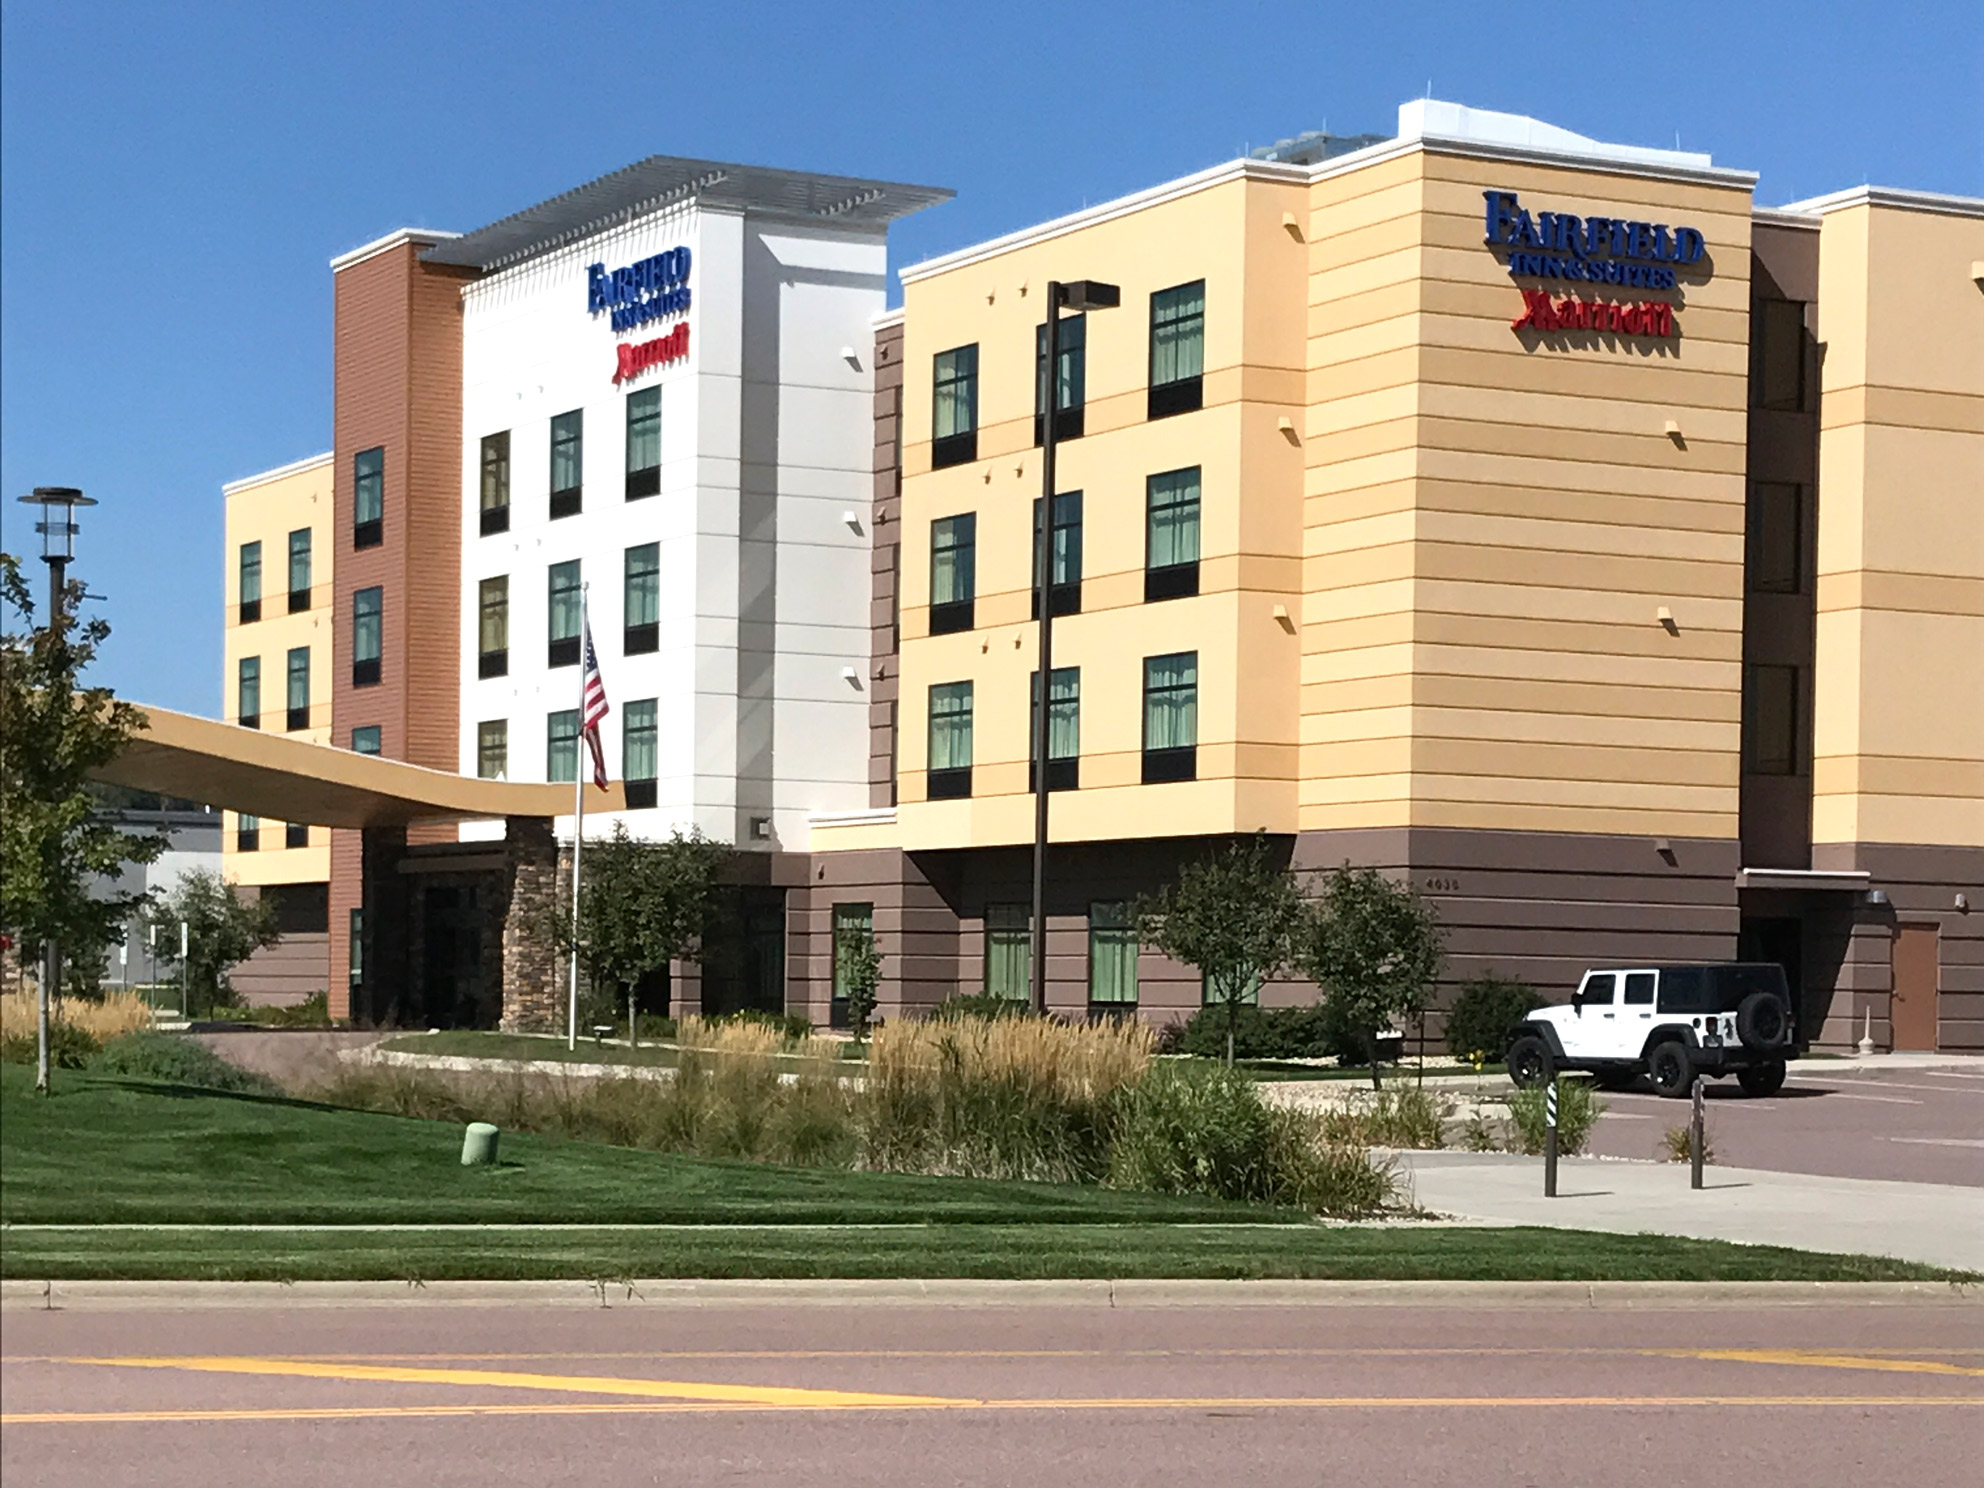 Fairfield Hotel in Sioux Falls